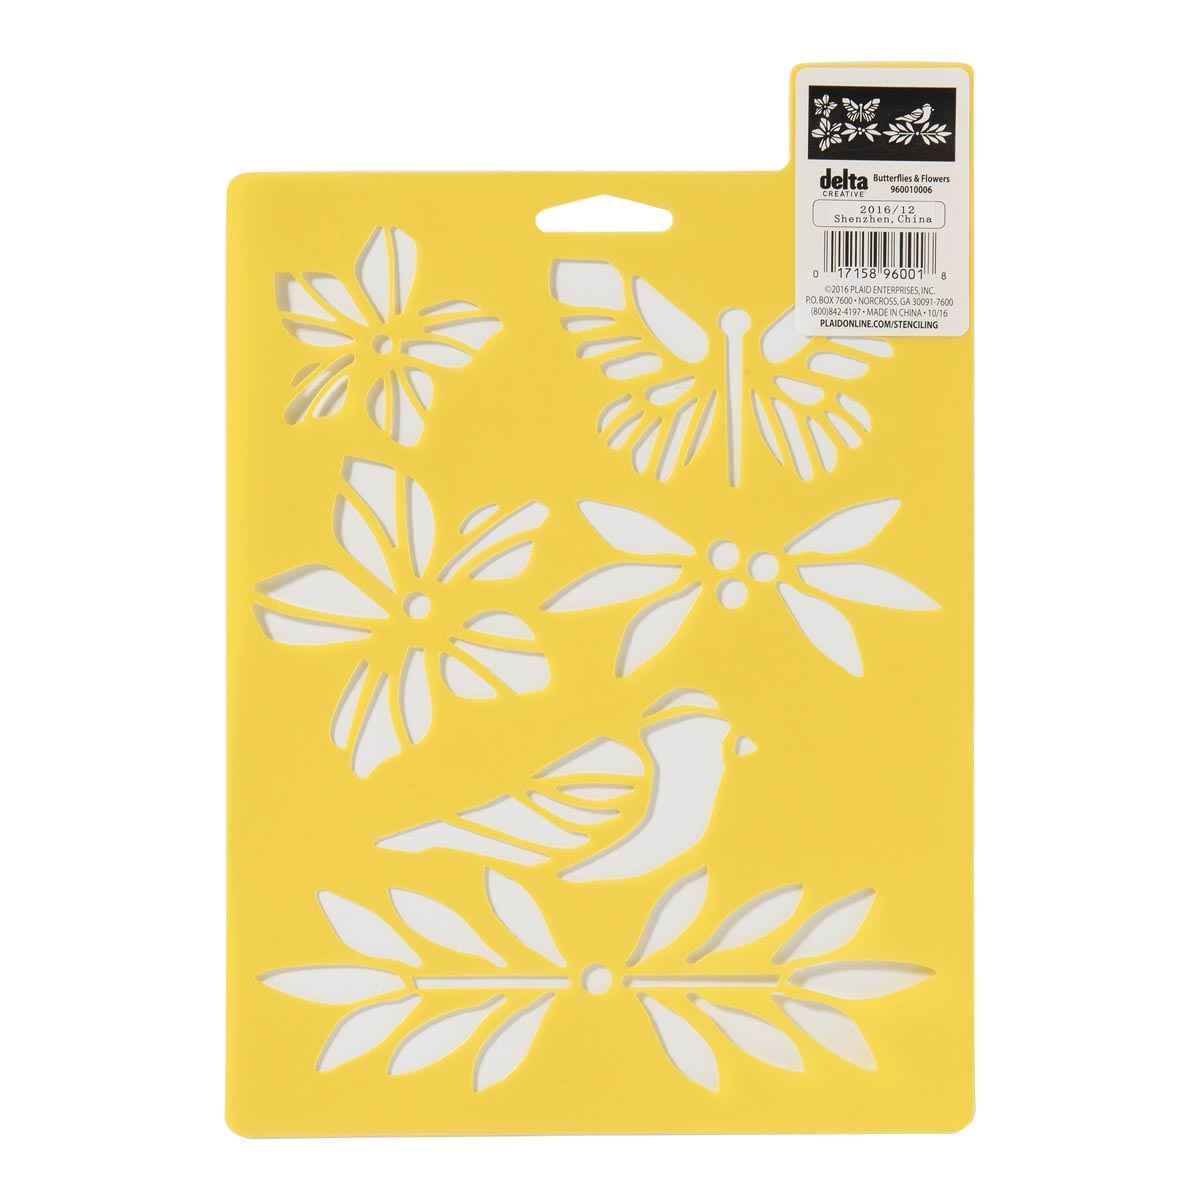 Delta Creative™ Stencil - Butterflies and Flowers - 960010006